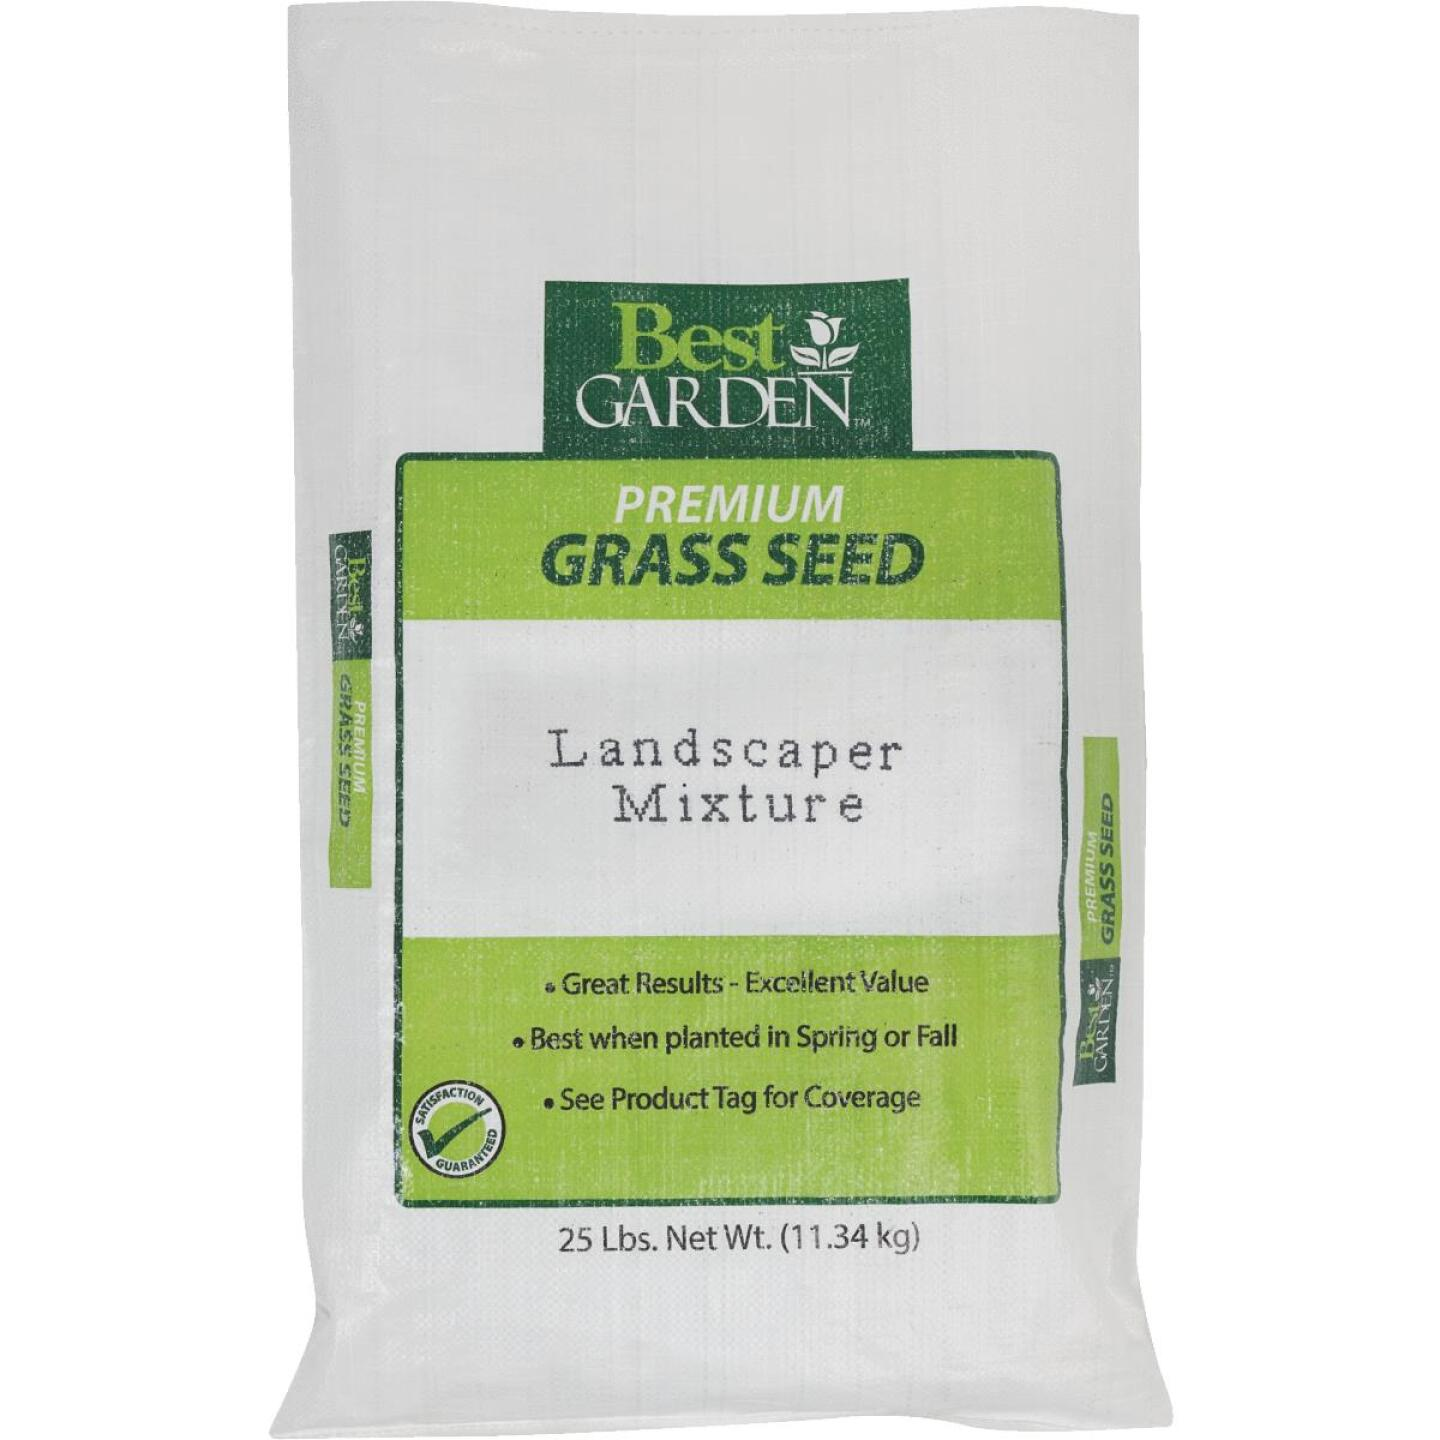 Best Garden 25 Lb. 3750 Sq. Ft. Coverage Sun to Partial Shade Grass Seed Image 1